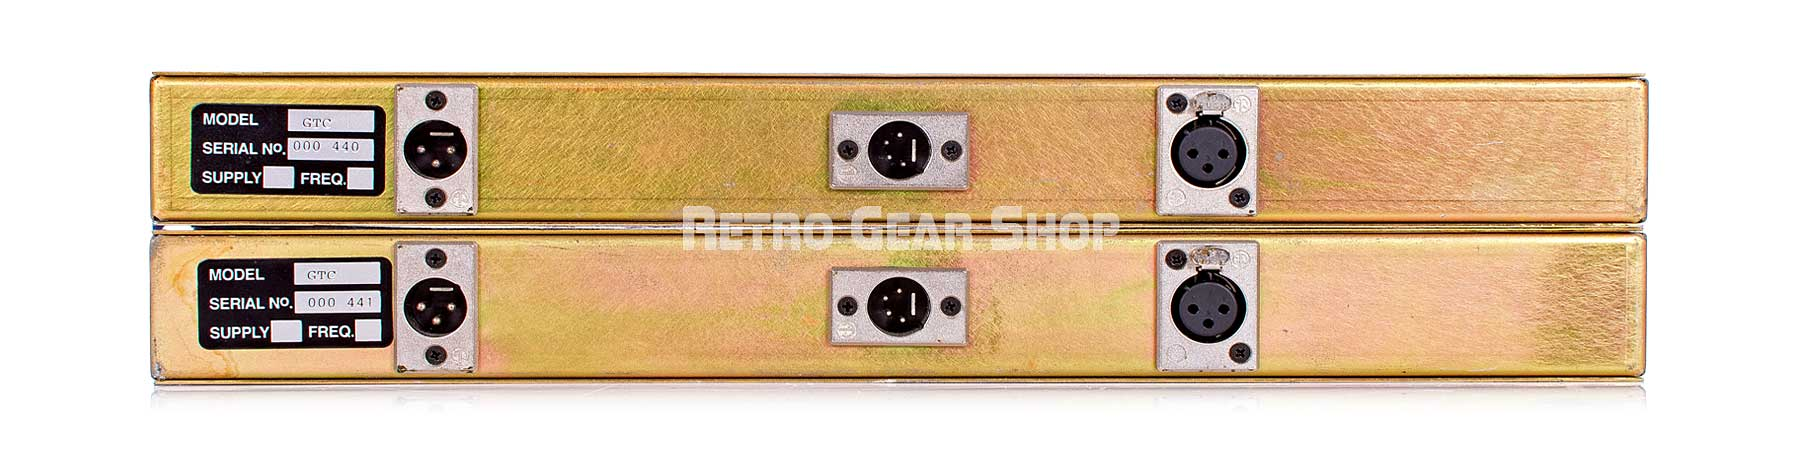 Chandler Limited Germanium Tone Control Pair Rear